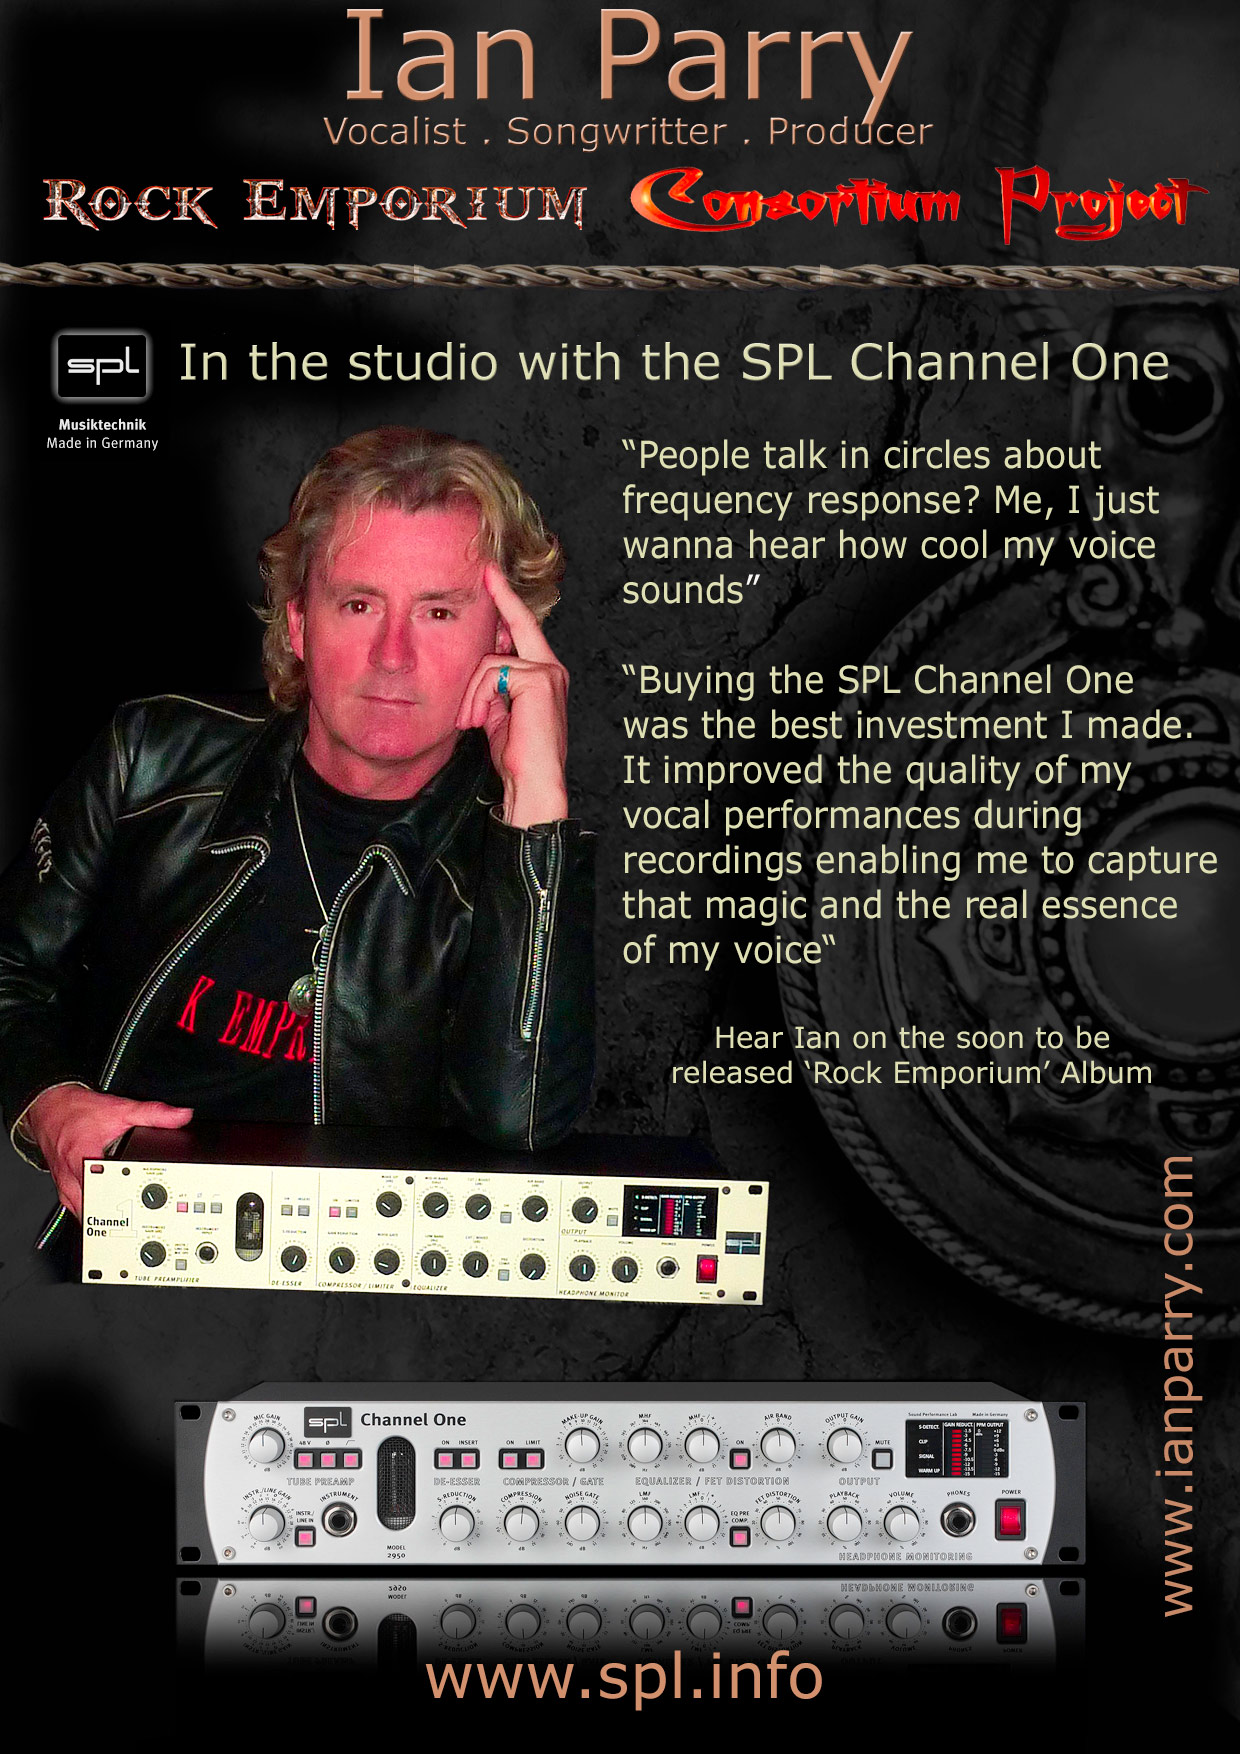 Non-Stop Music Productions (NSMP) uses SPL preamps